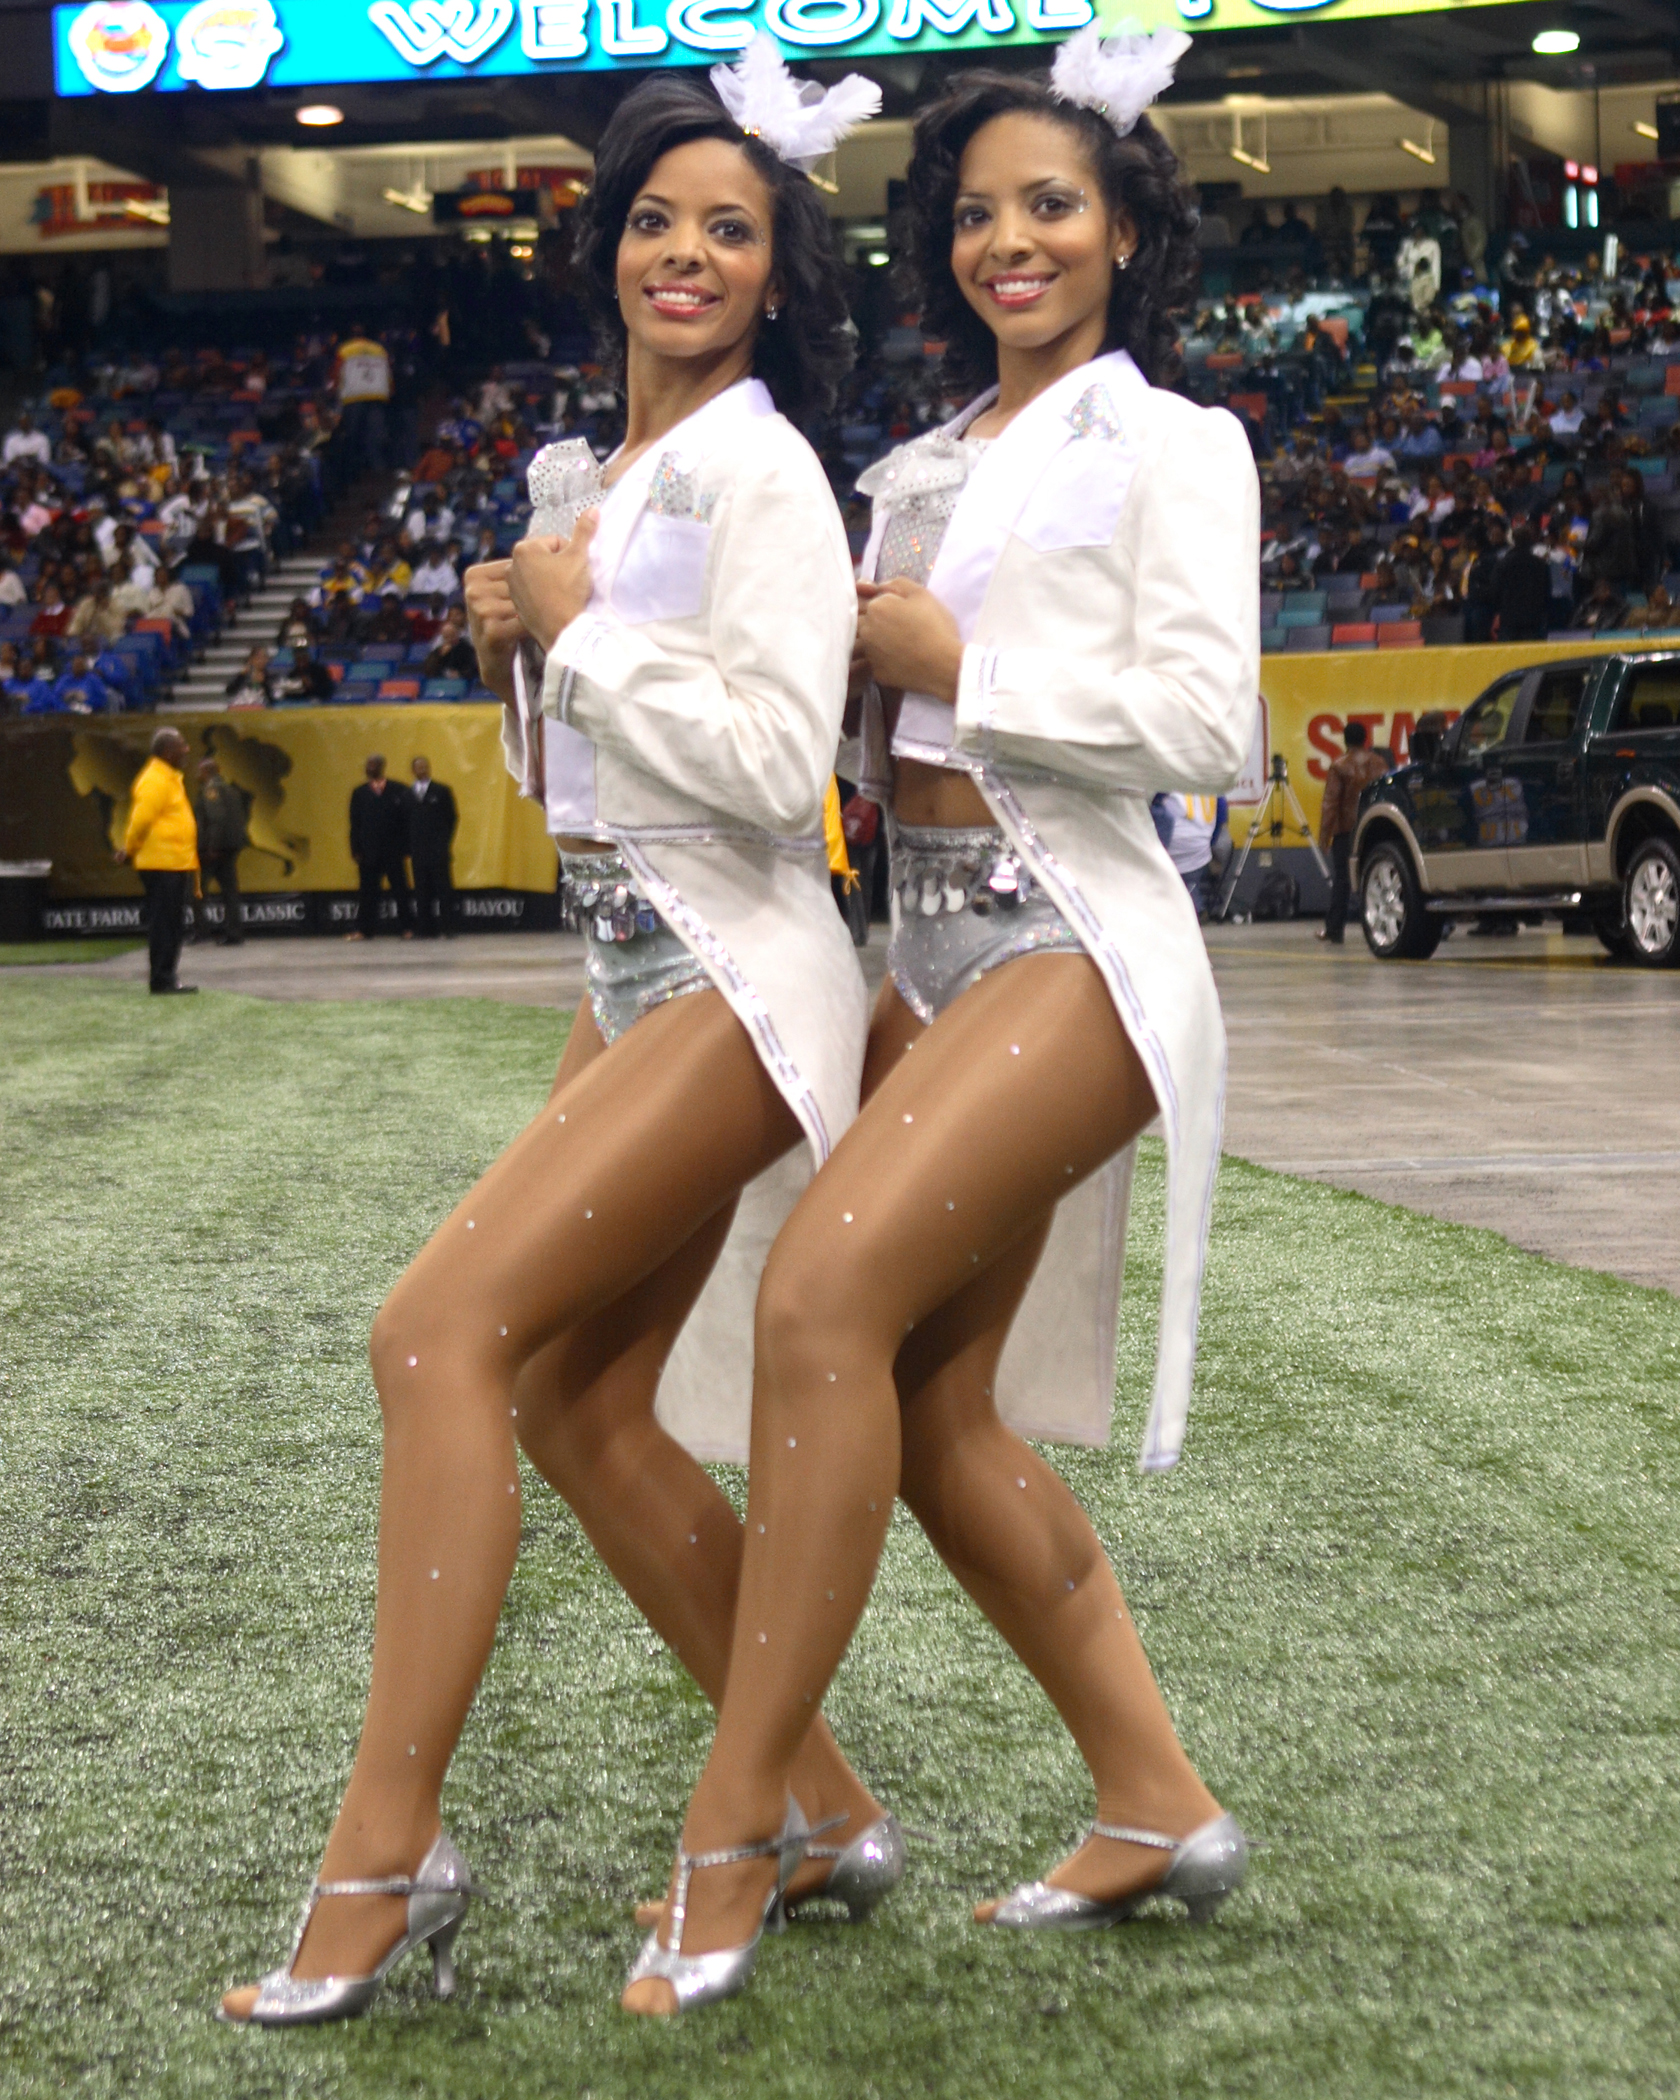 Southern University Twins Subjects Of Documentary Project